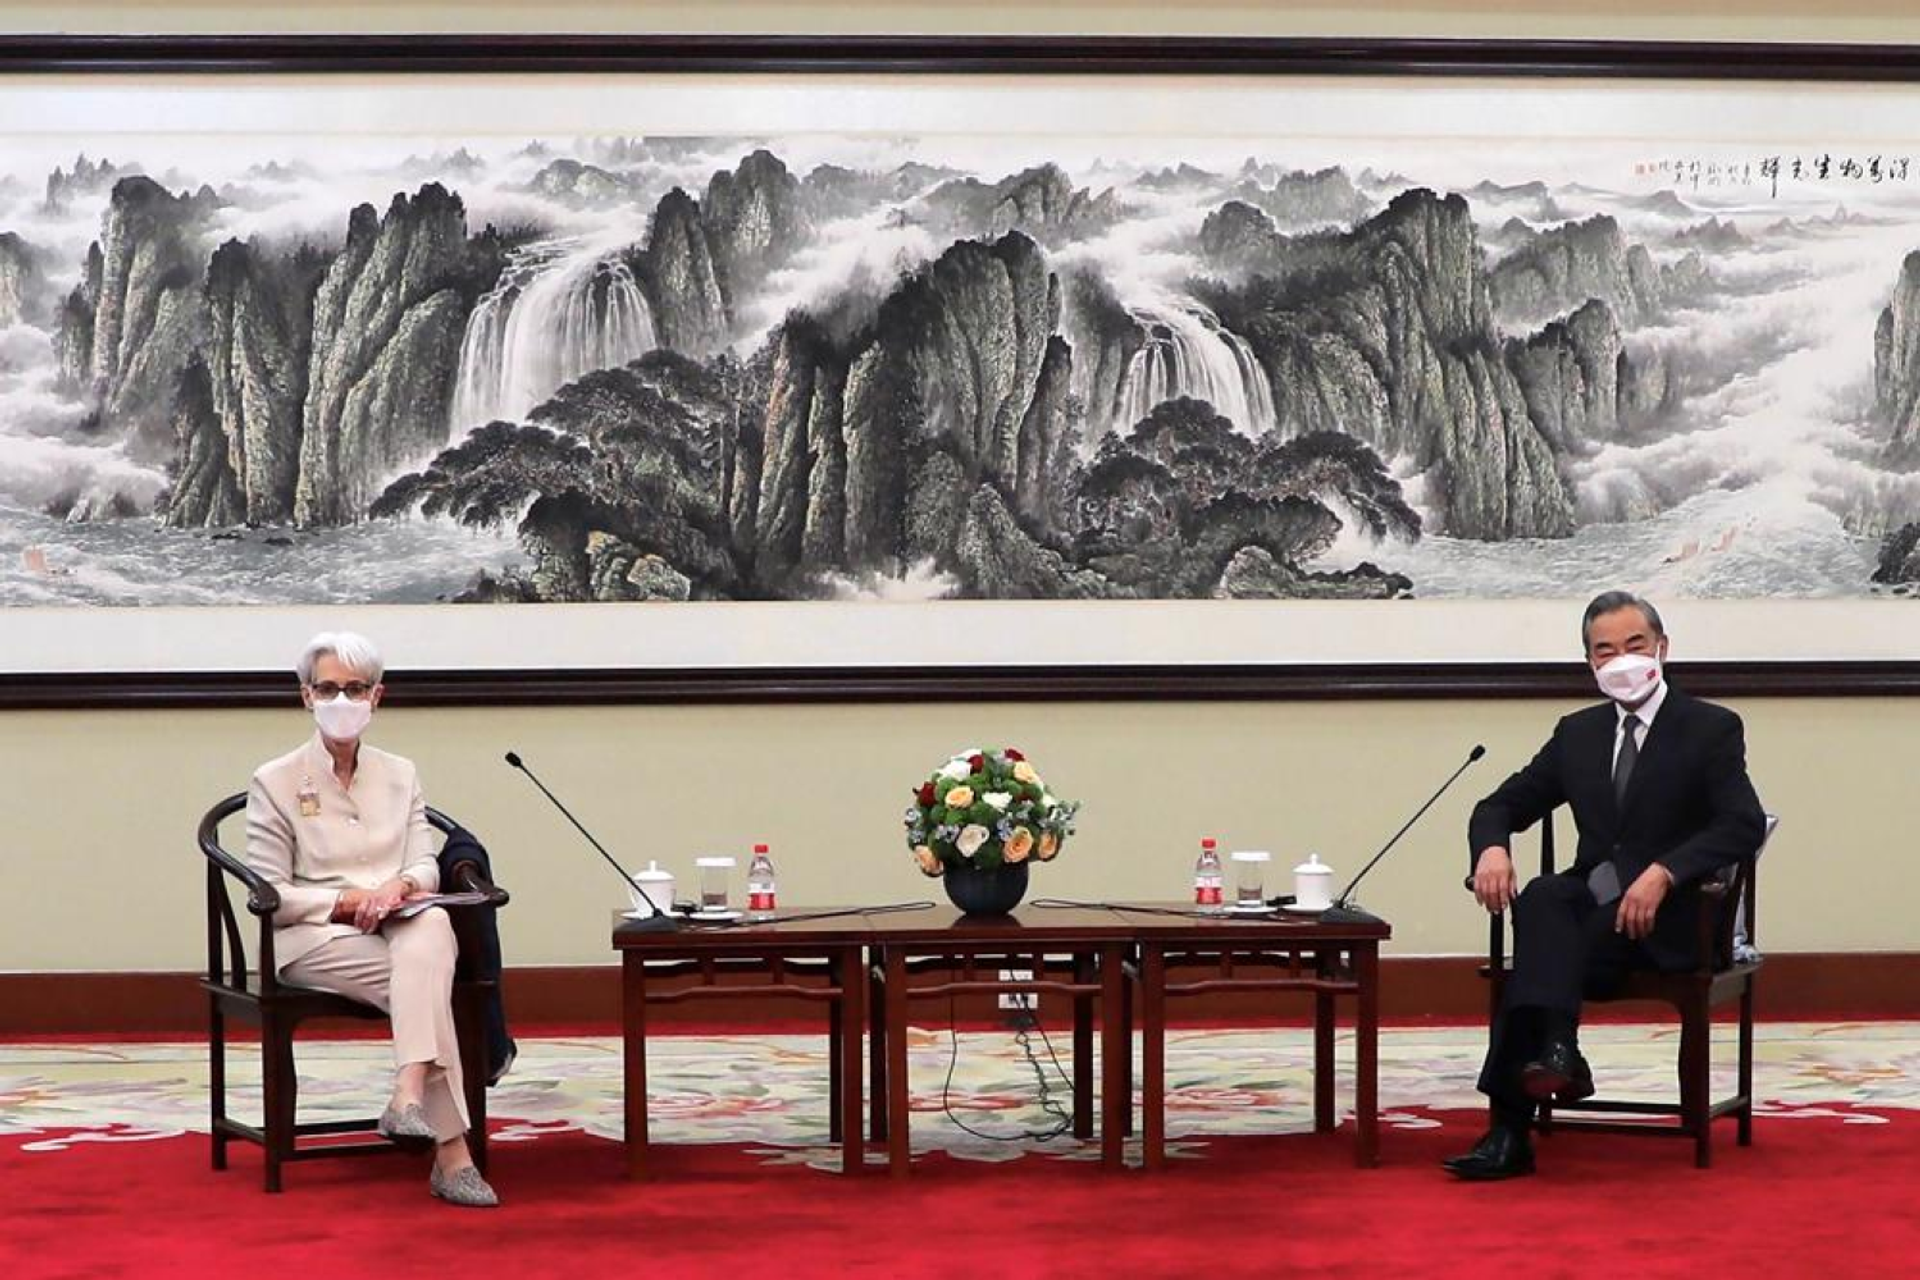 In this photo provided by the U.S. Department of State, U.S. Deputy Secretary of State Wendy Sherman, left, and Chinese Foreign Minister Wang Yi sit together in Tianjin, China, Monday, July 26, 2021. - Sputnik International, 1920, 07.09.2021